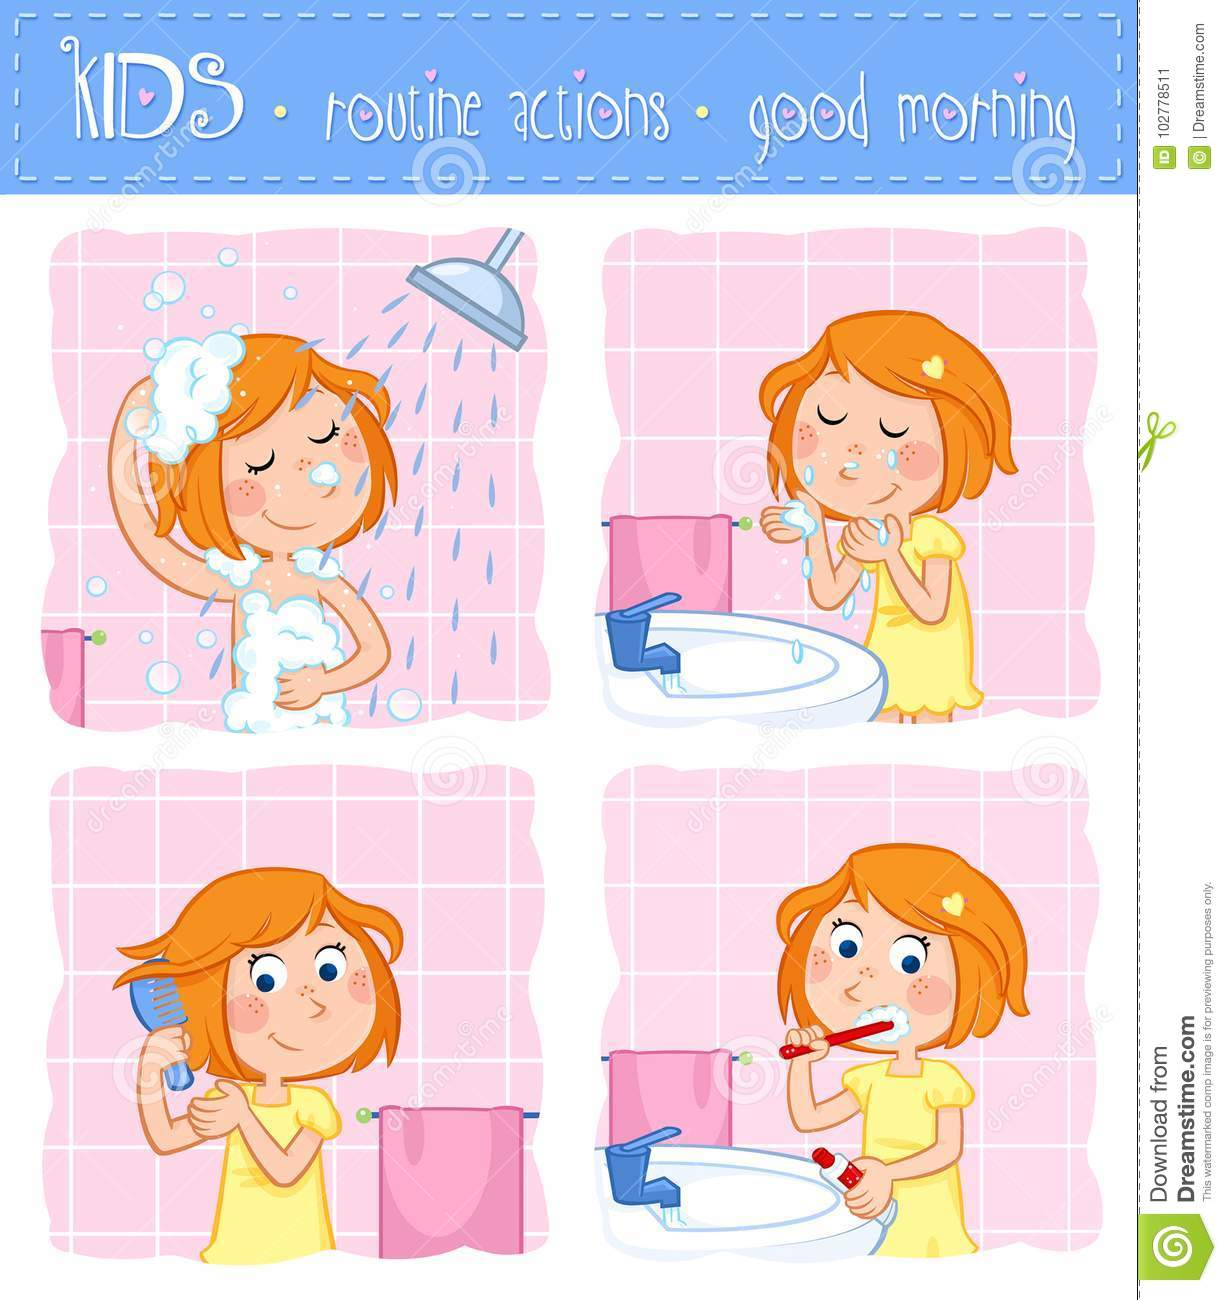 Ginger Desenho in kids - routine actions - tooth brushing, washing face, taking a